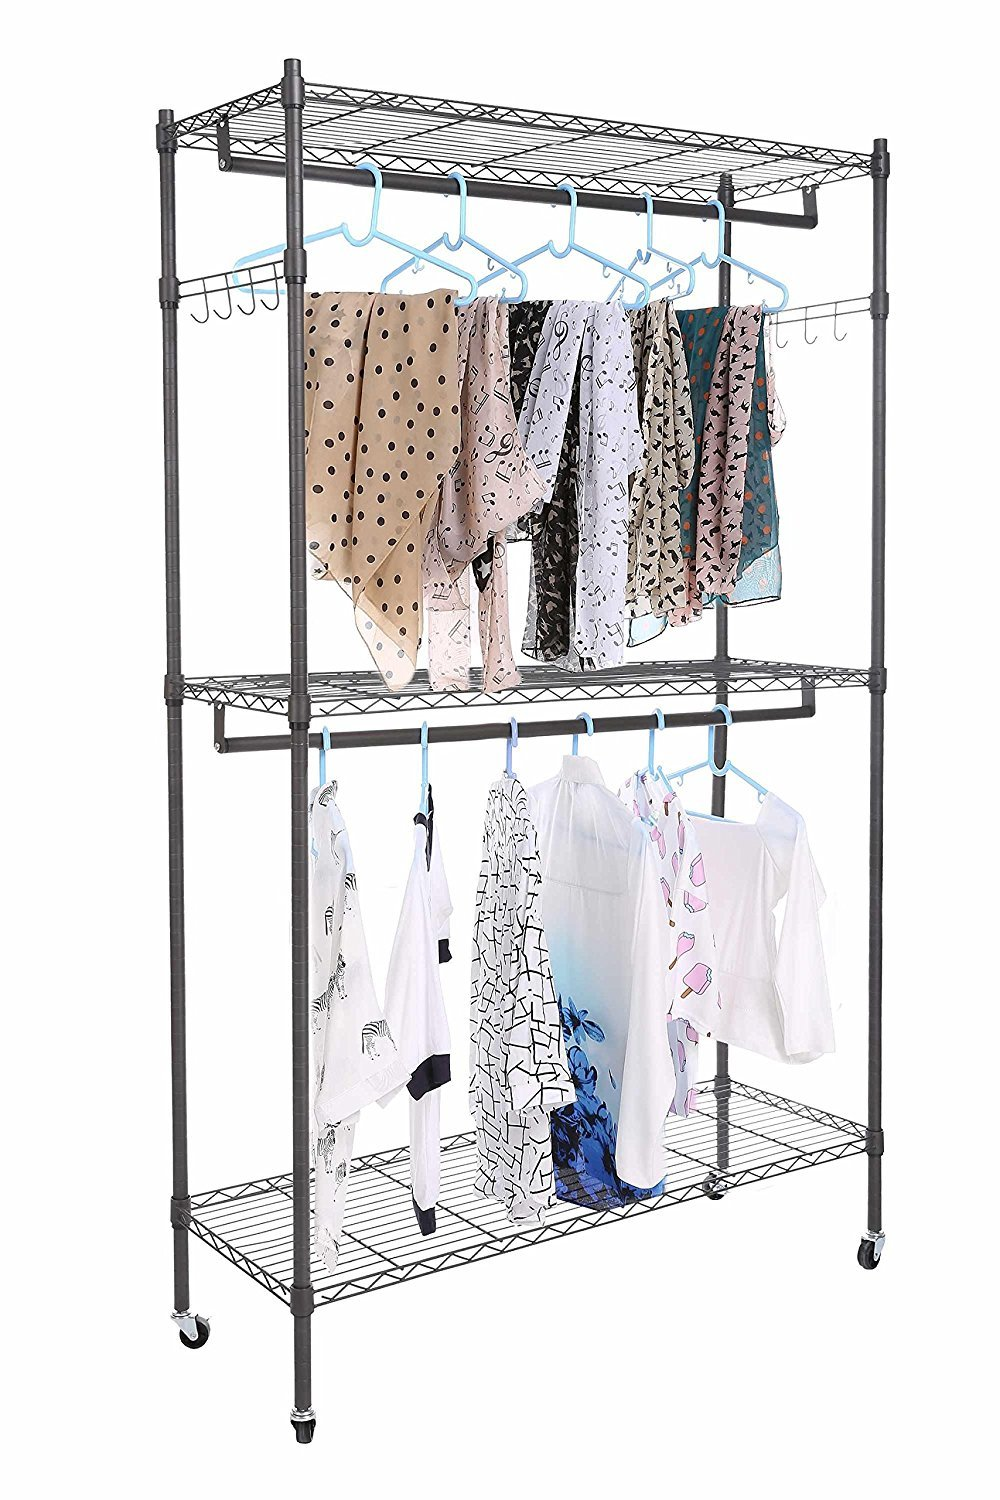 Large Portable 3-Tier Wire Shelving Clothes Wardrobe Home Closet Hanger Storage Organizer Shelf Garment Rack + Side Hooks + Wheels (GR, 2 set of hanging clothes)